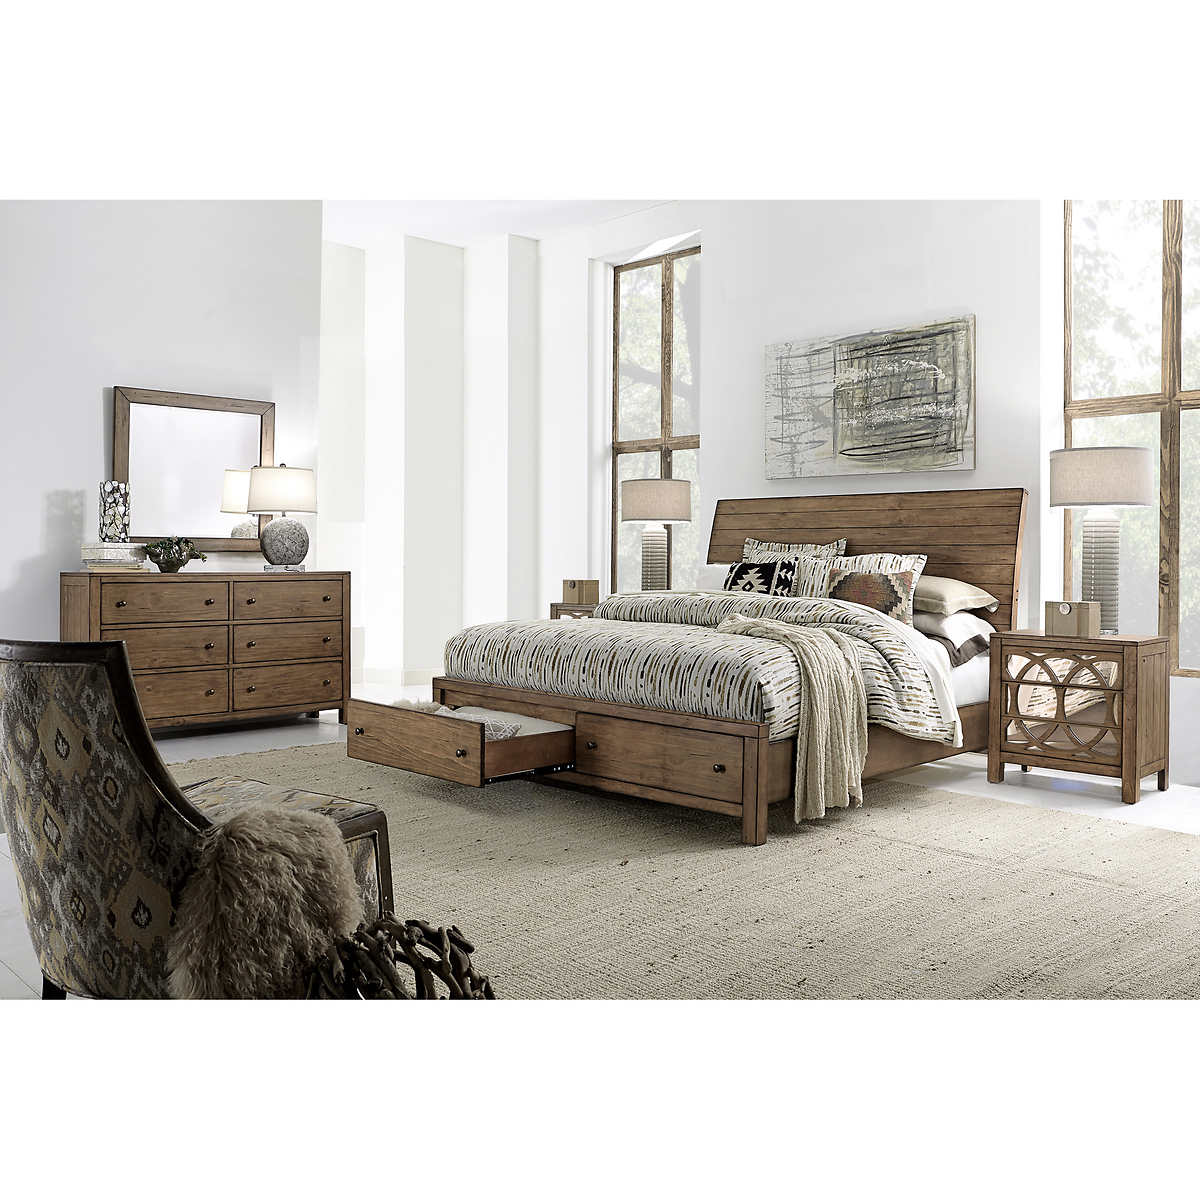 Audrey 5piece Cal King Storage Bedroom Set